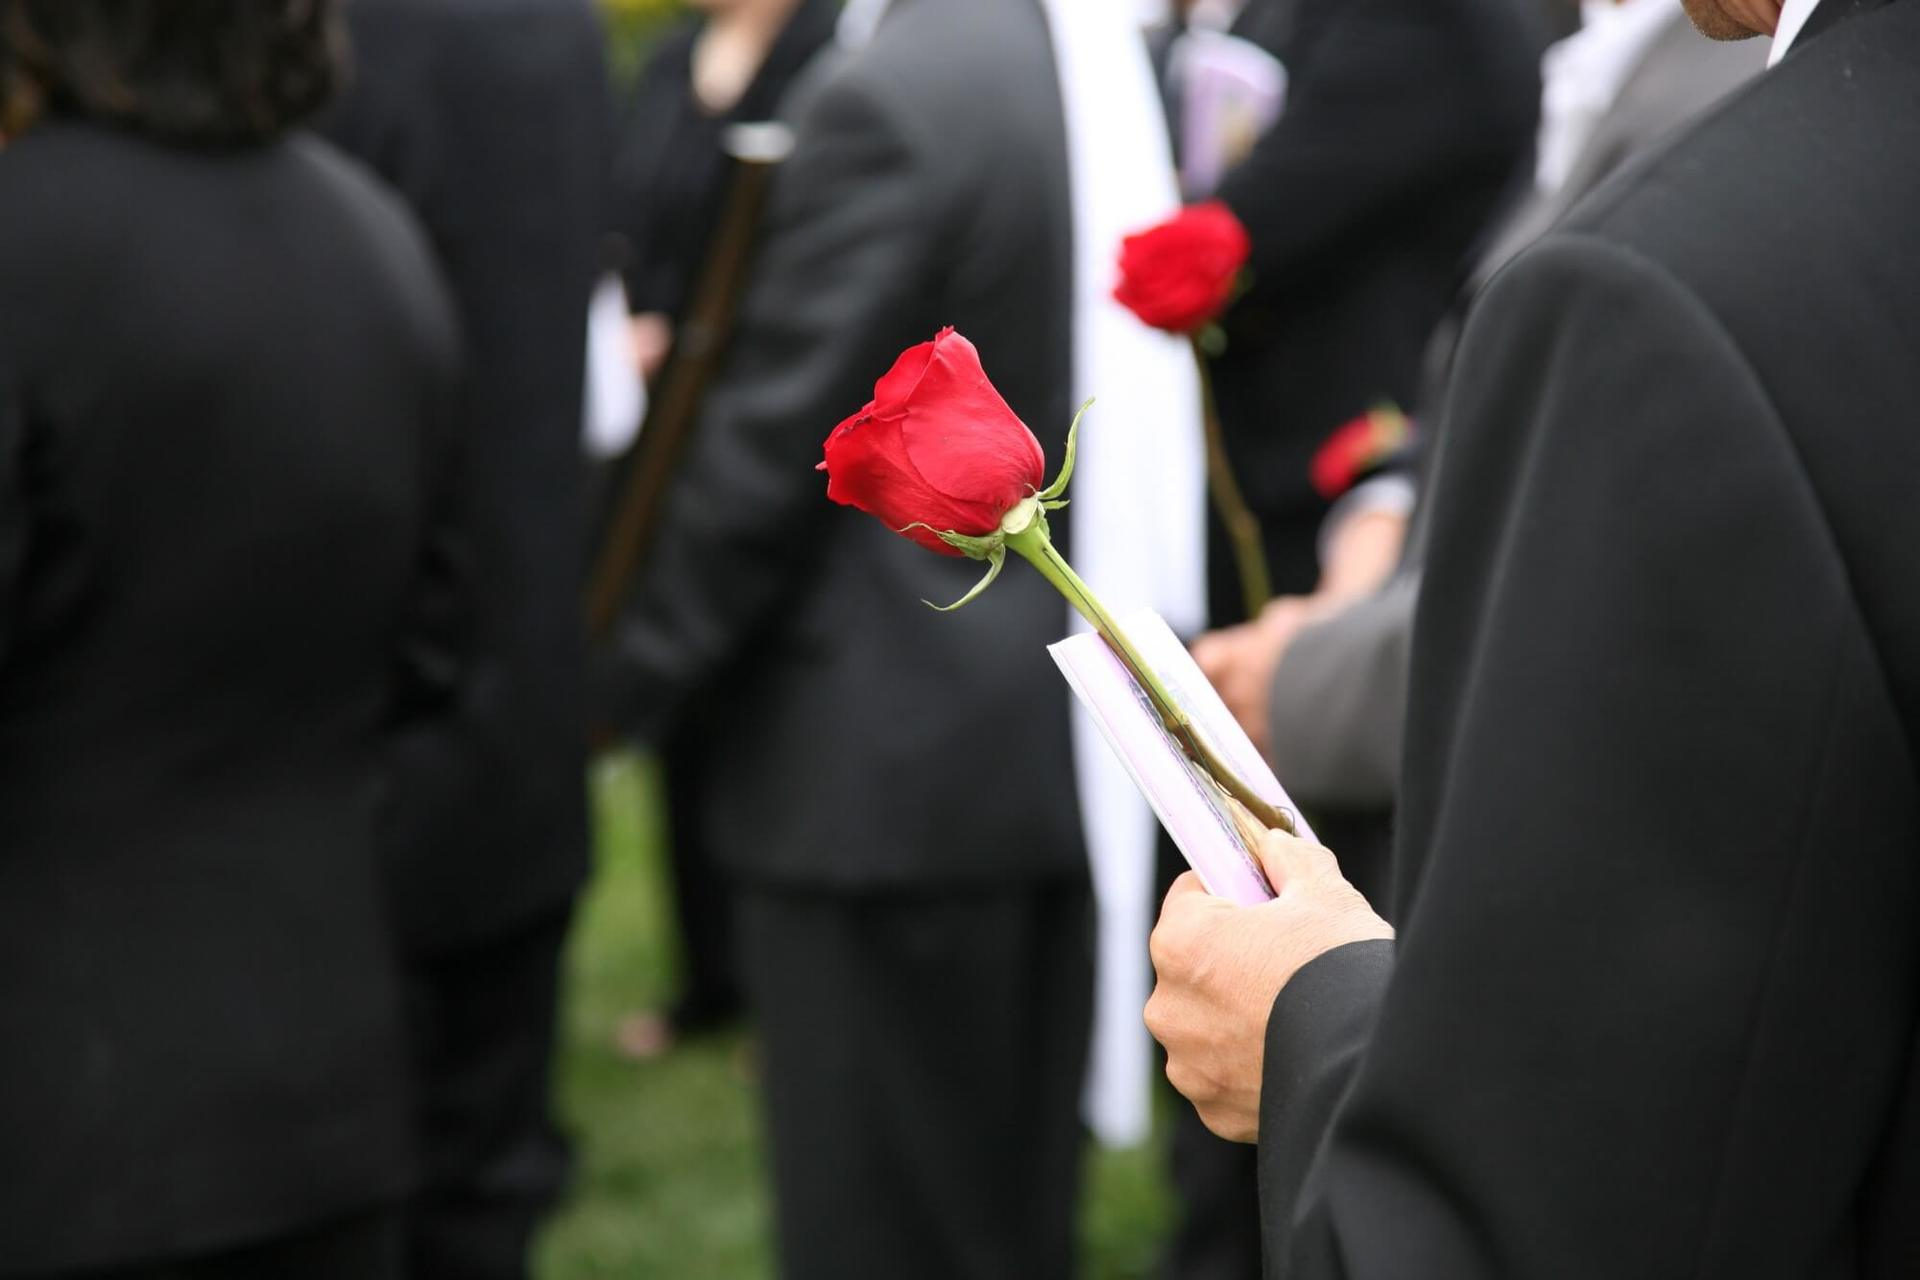 Close up rose during funeral service